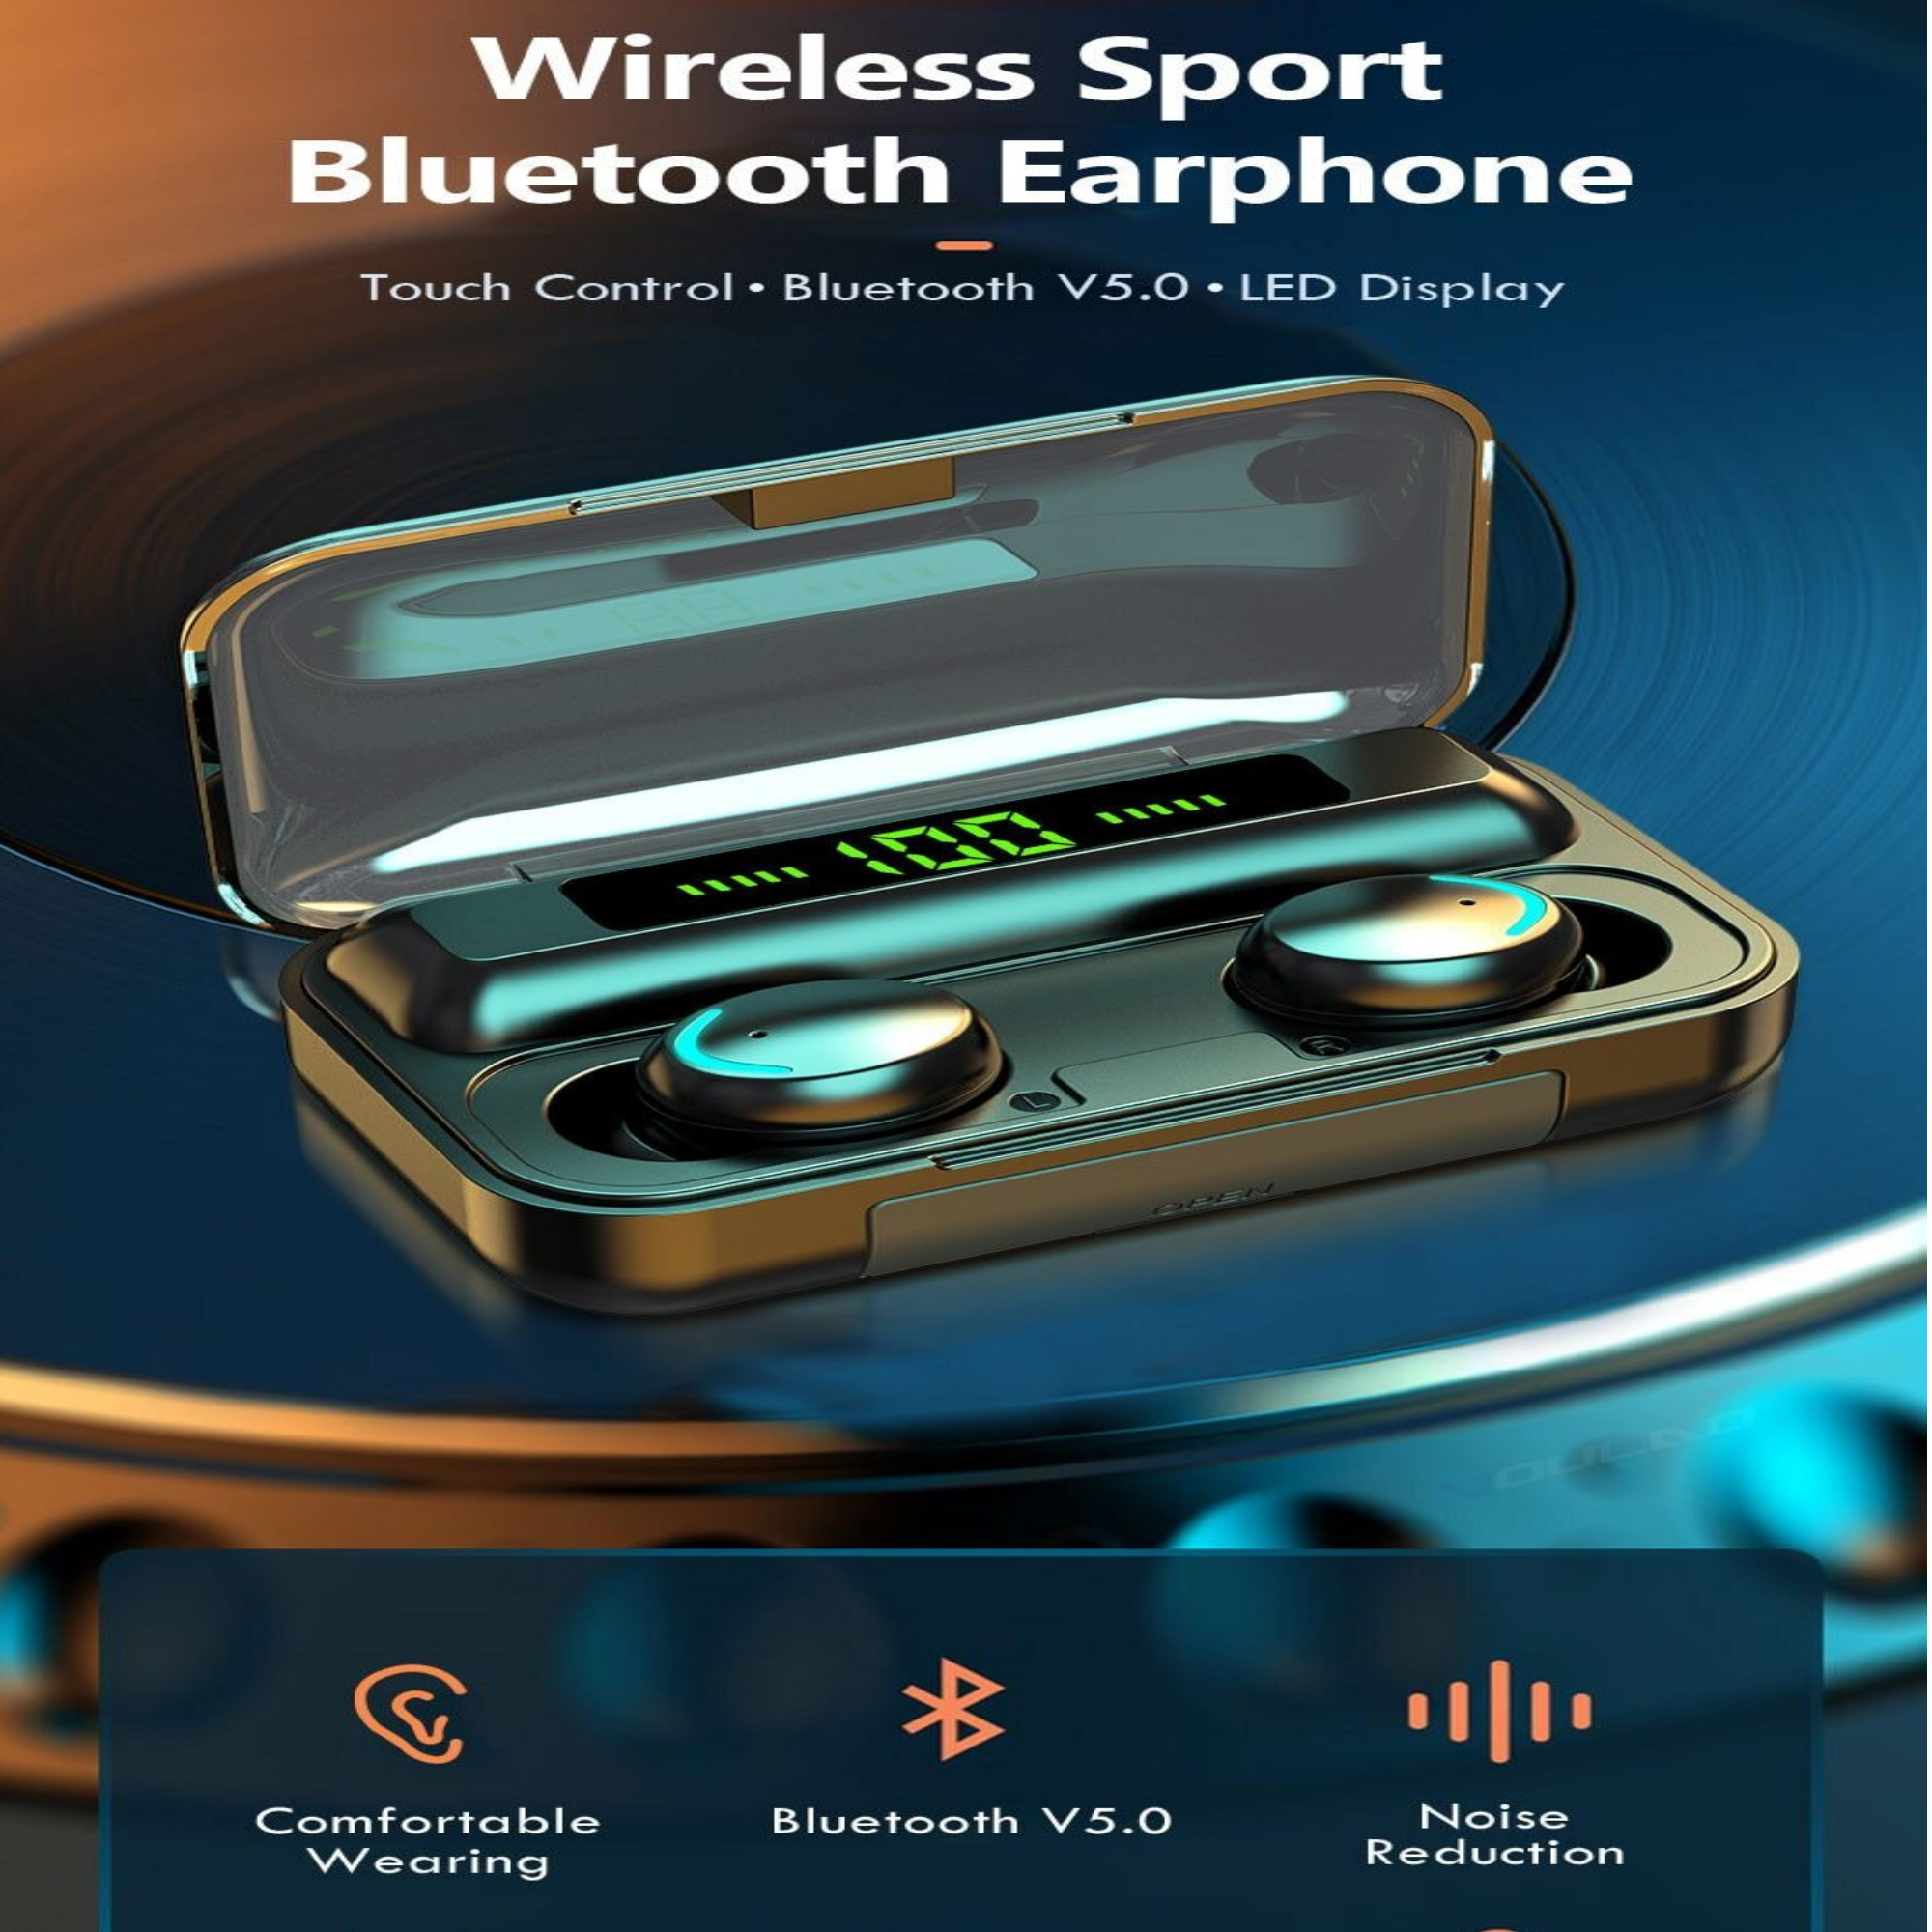 Ws Bluetooth 5 0 Earphones 2200mah Charging Box Wireless Headphone 9d Stereo Sports Waterproof Earbuds Headsets With Microphone Sold By Ouais On Storenvy